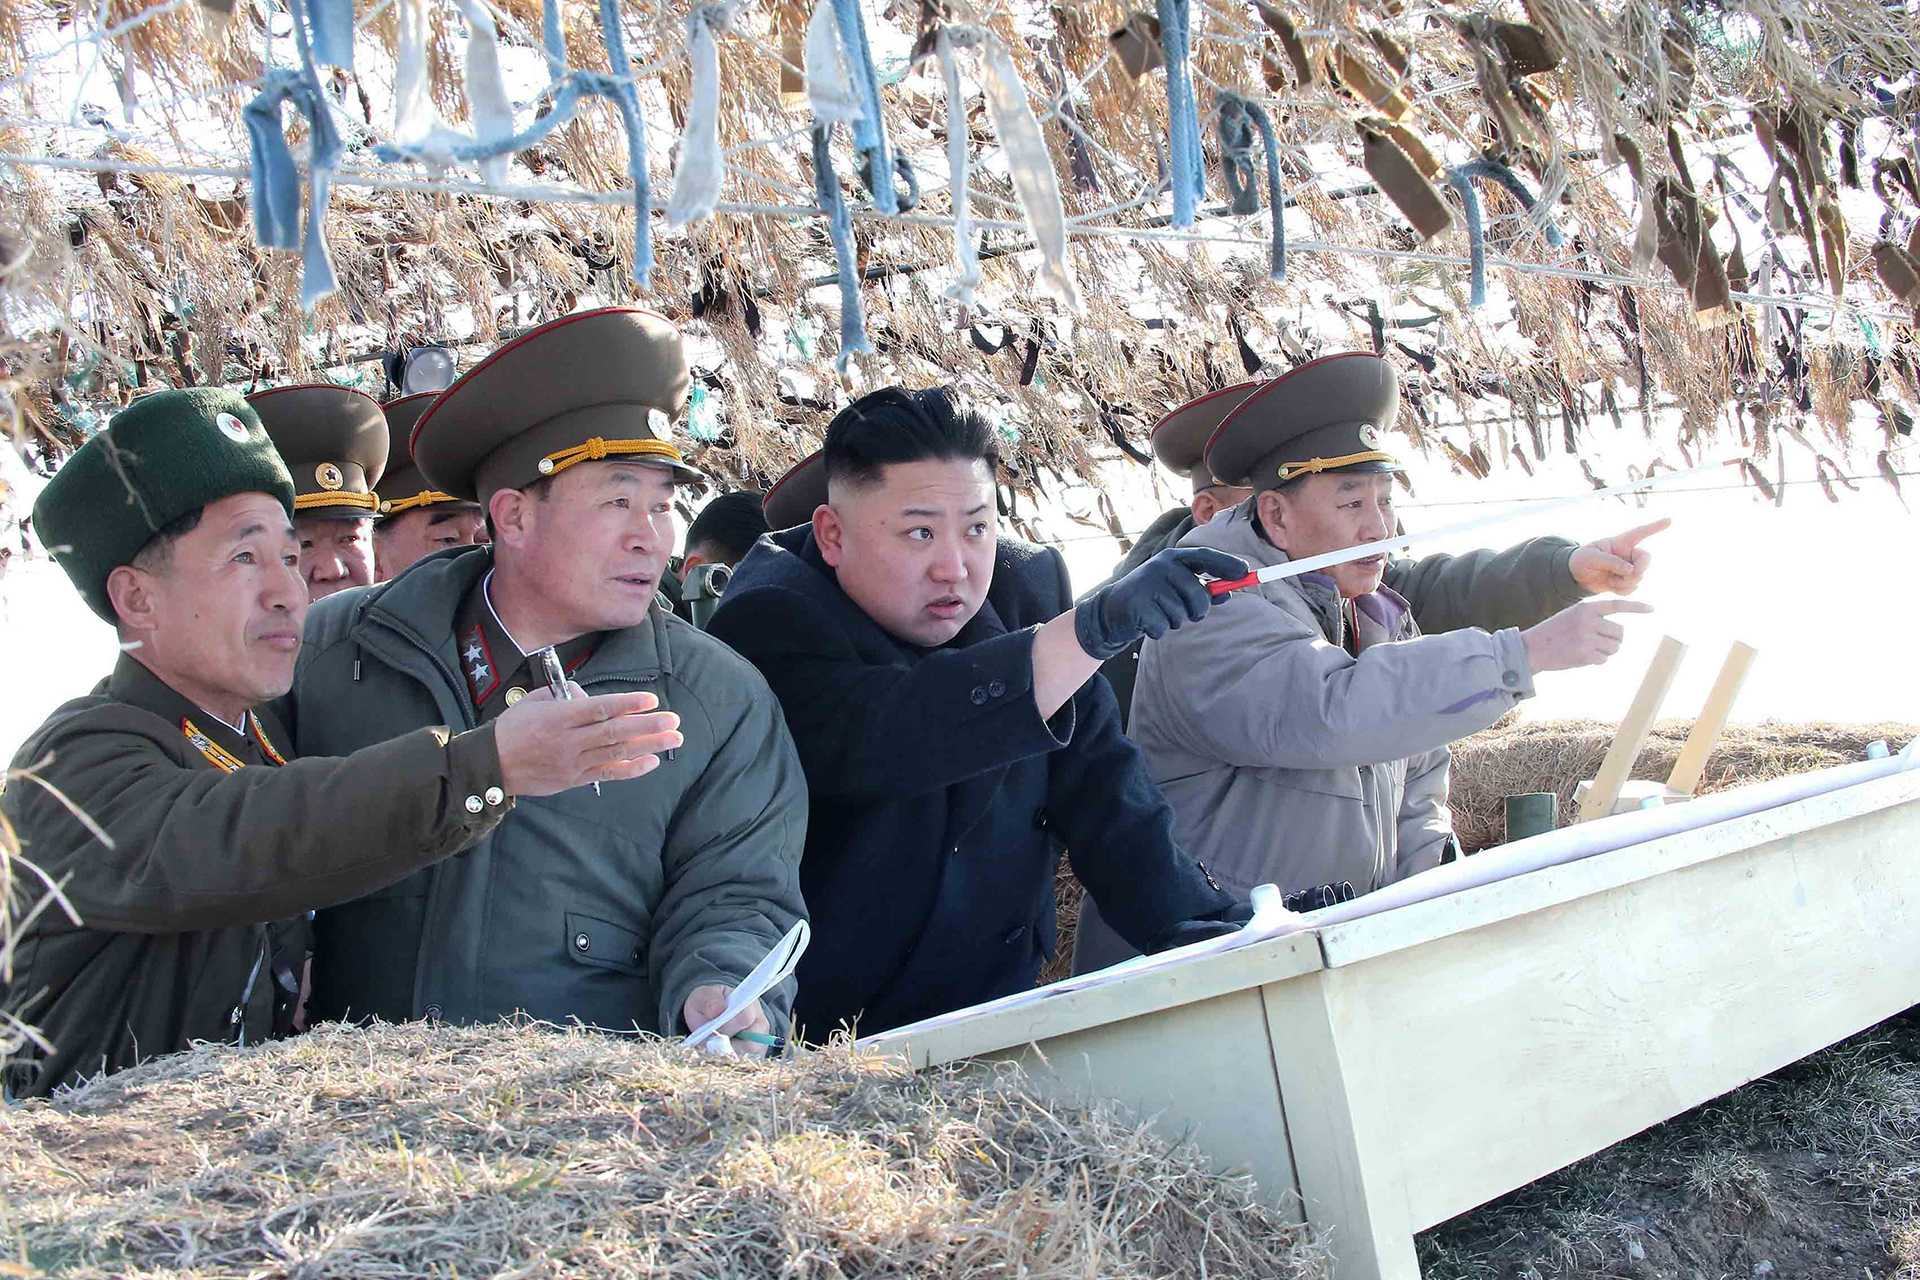 A photo released by KCNA news agency on March 12, 2013, shows North Korea leader Kim Jong Un visiting the Wolnae-do Defence Detachment on the western front line. (KCNA/Xinhua/Zuma Press/MCT)